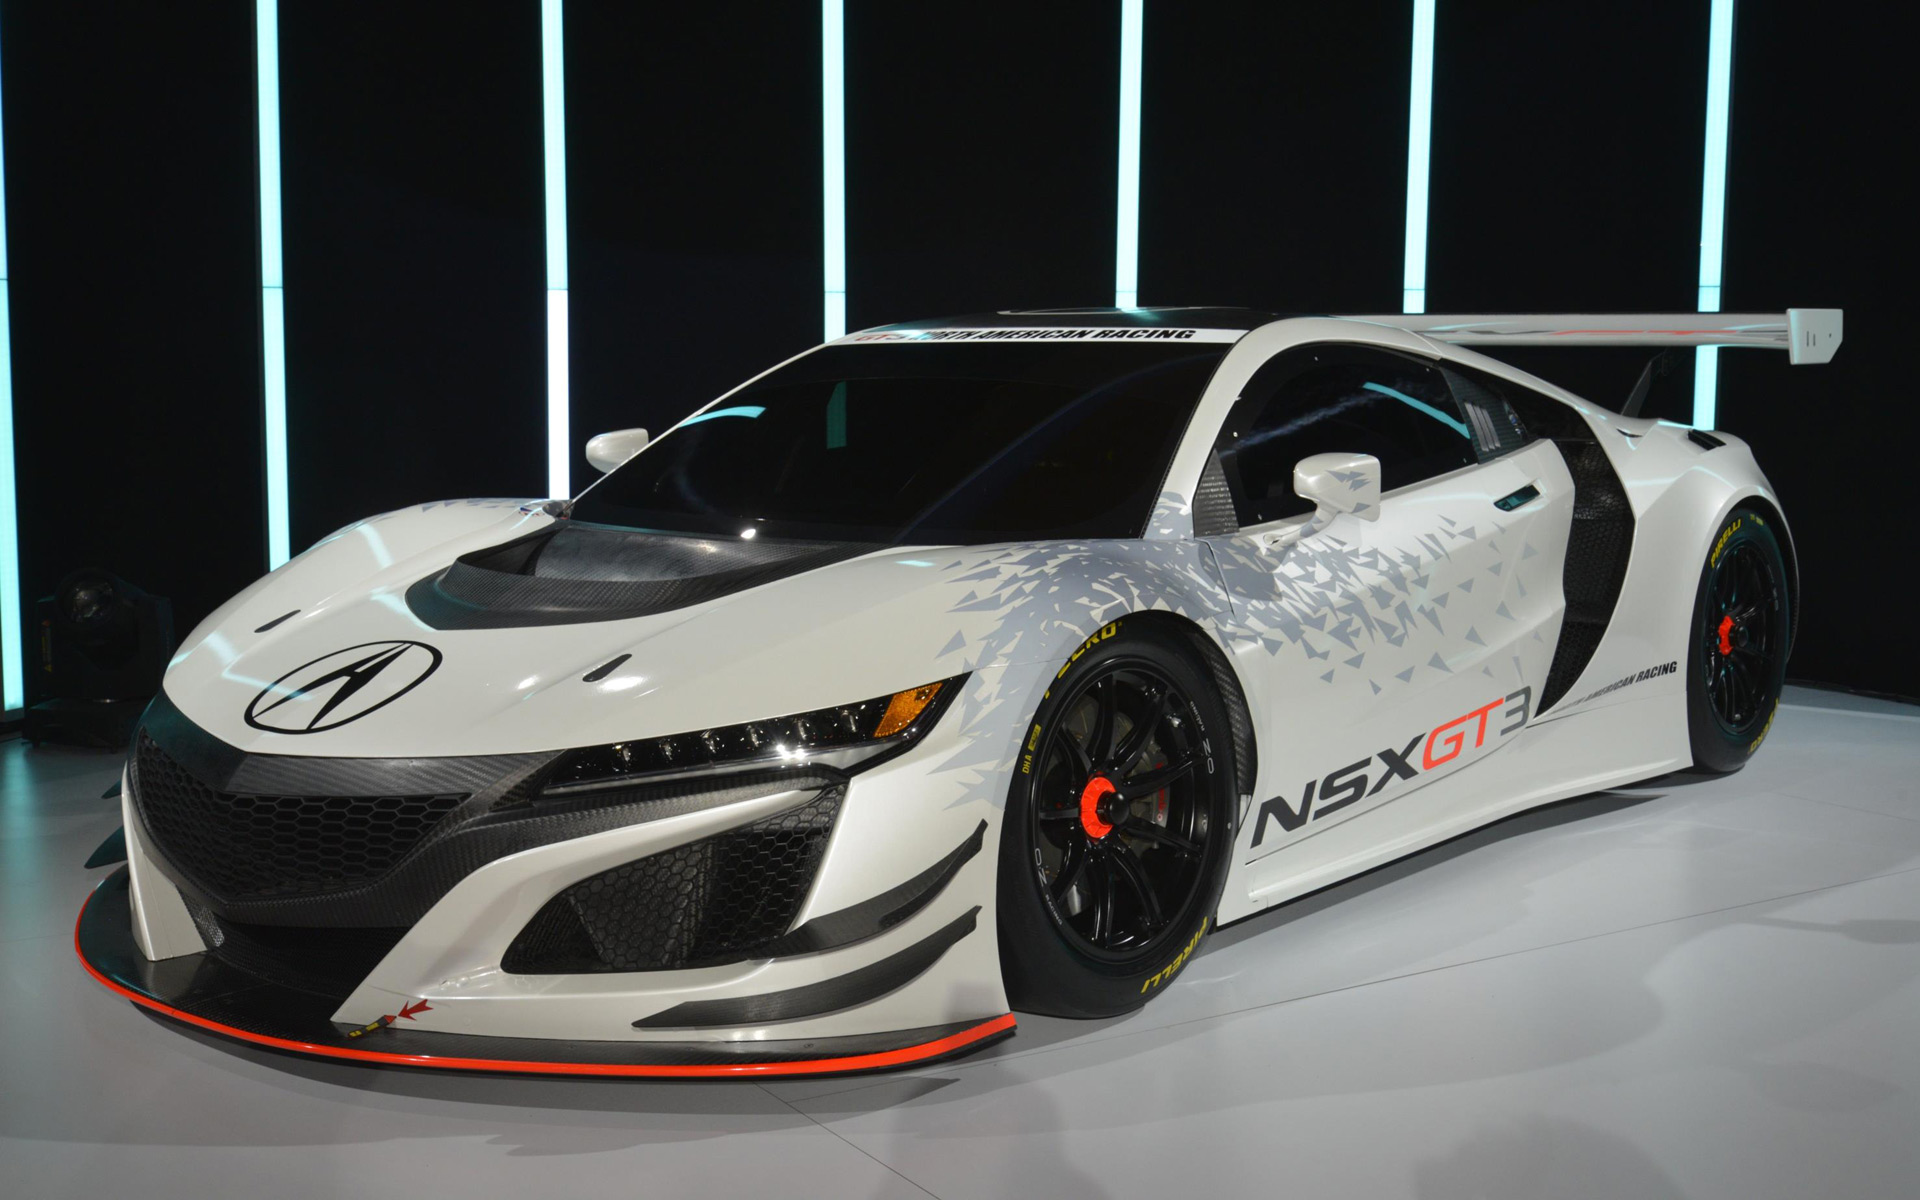 Acura Nsx Races Into New York Live Photos And Video